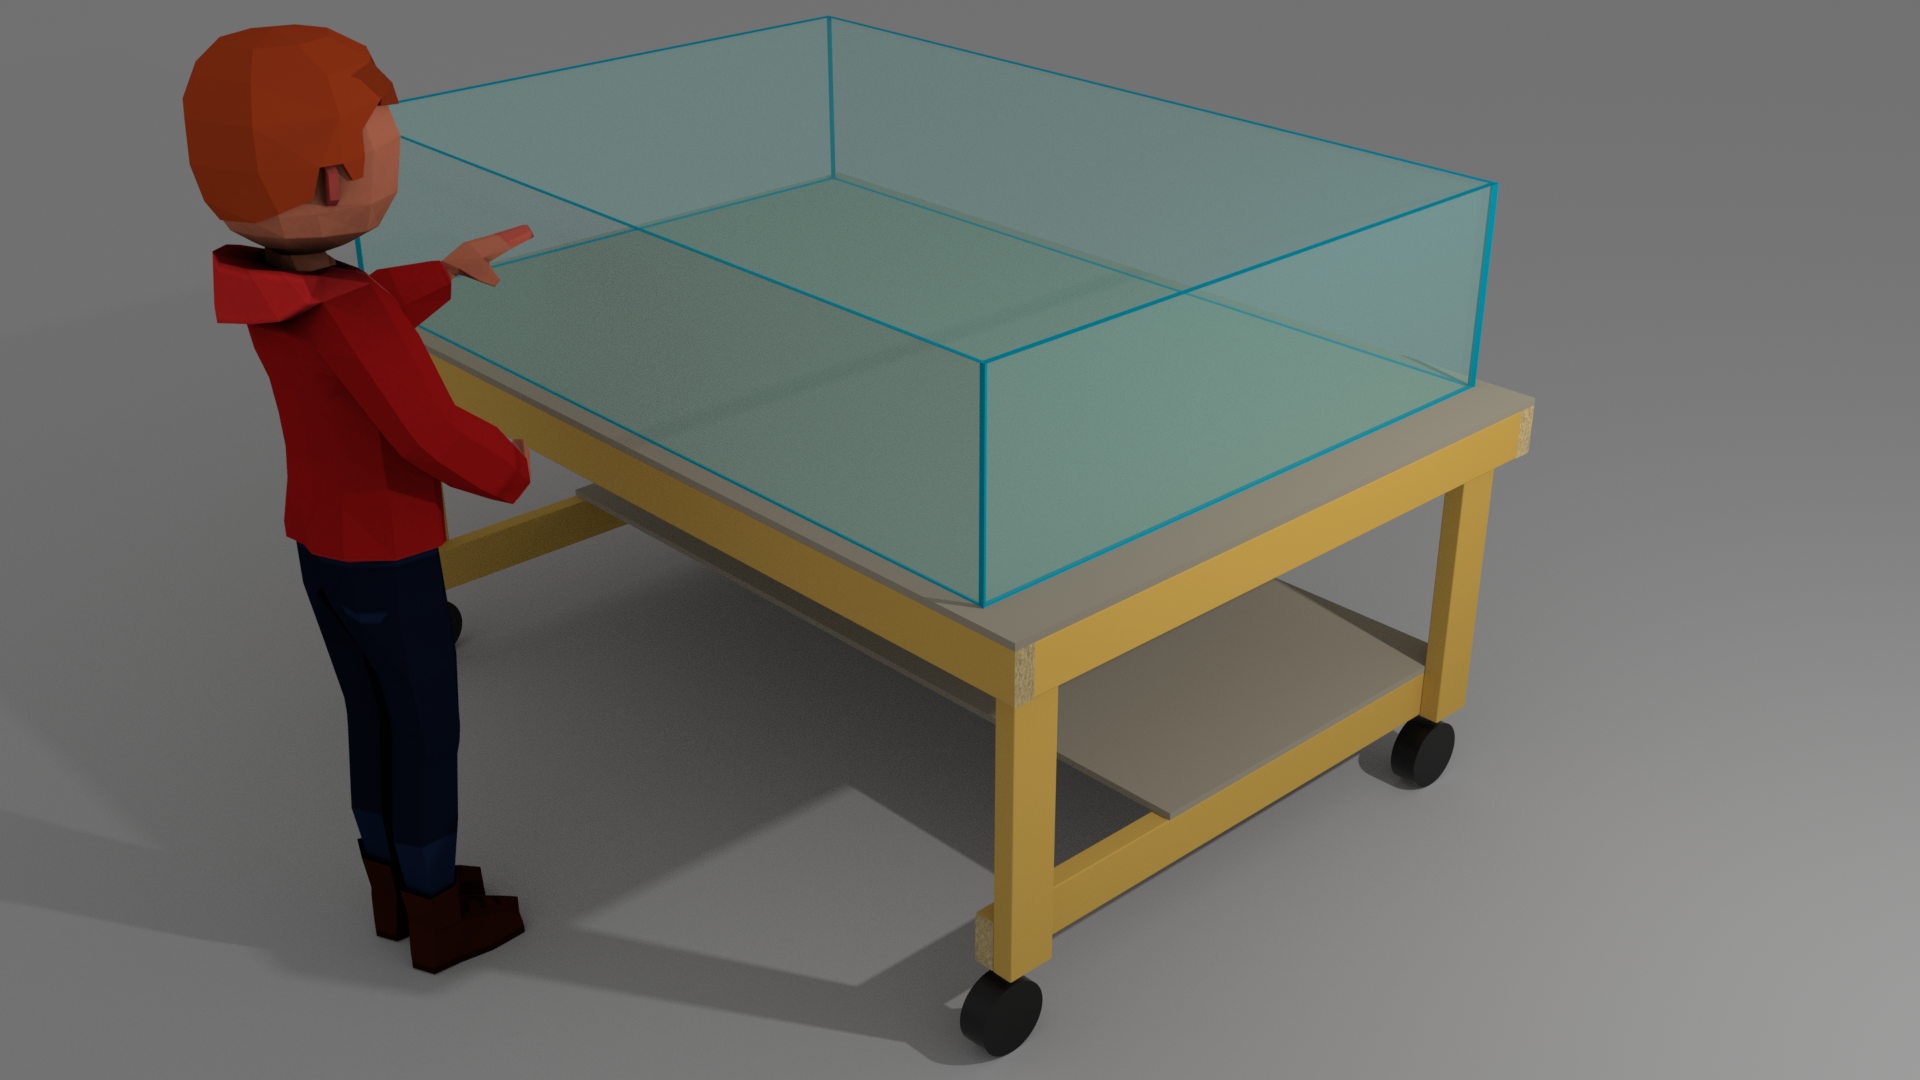 Lasersaur table